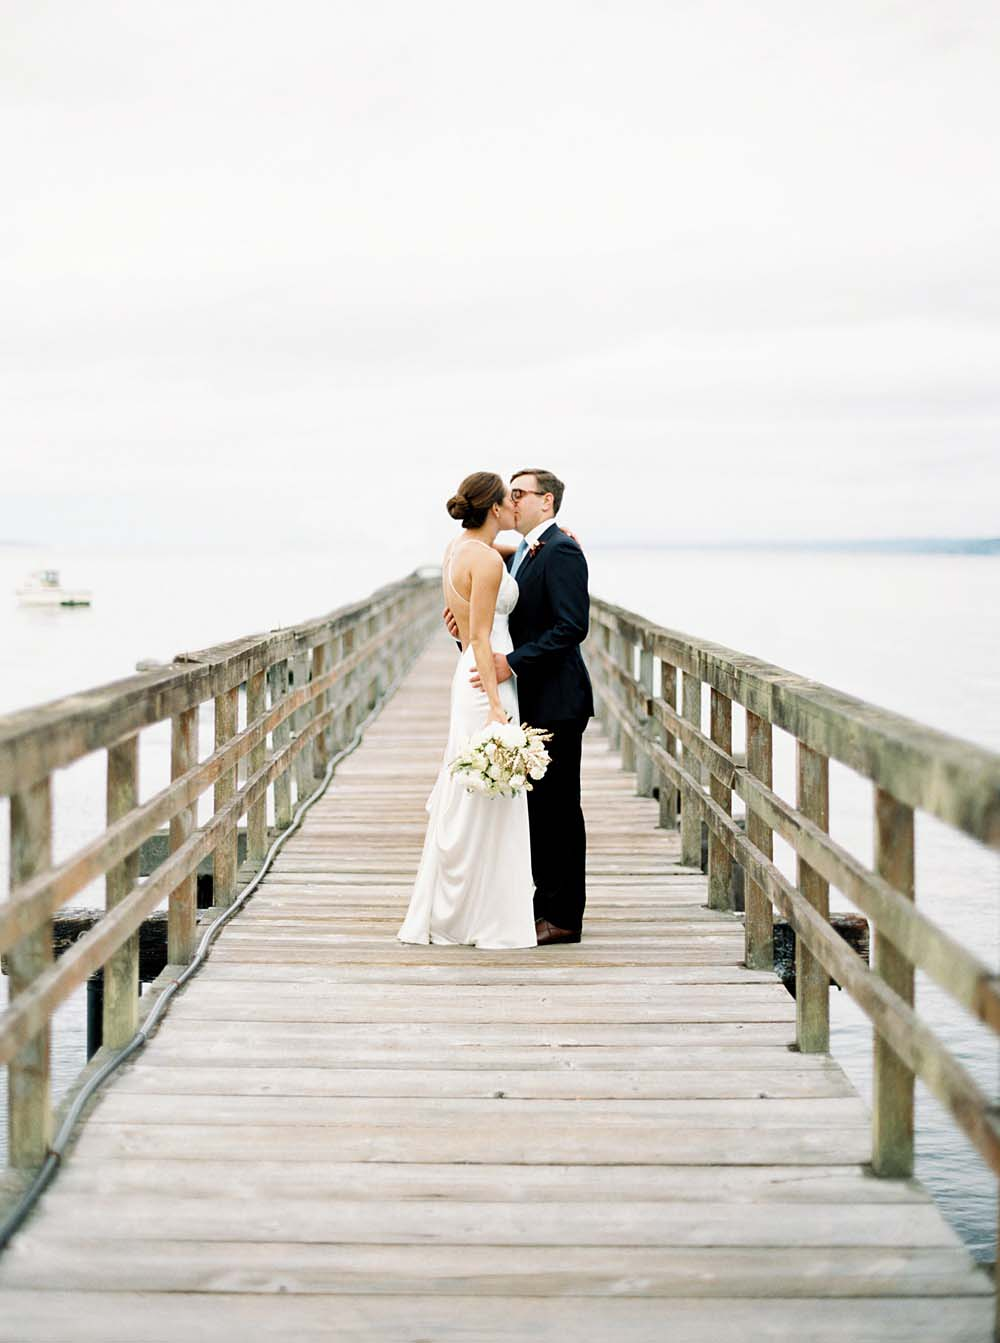 Bride and groom standing alone on a private dock, kissing